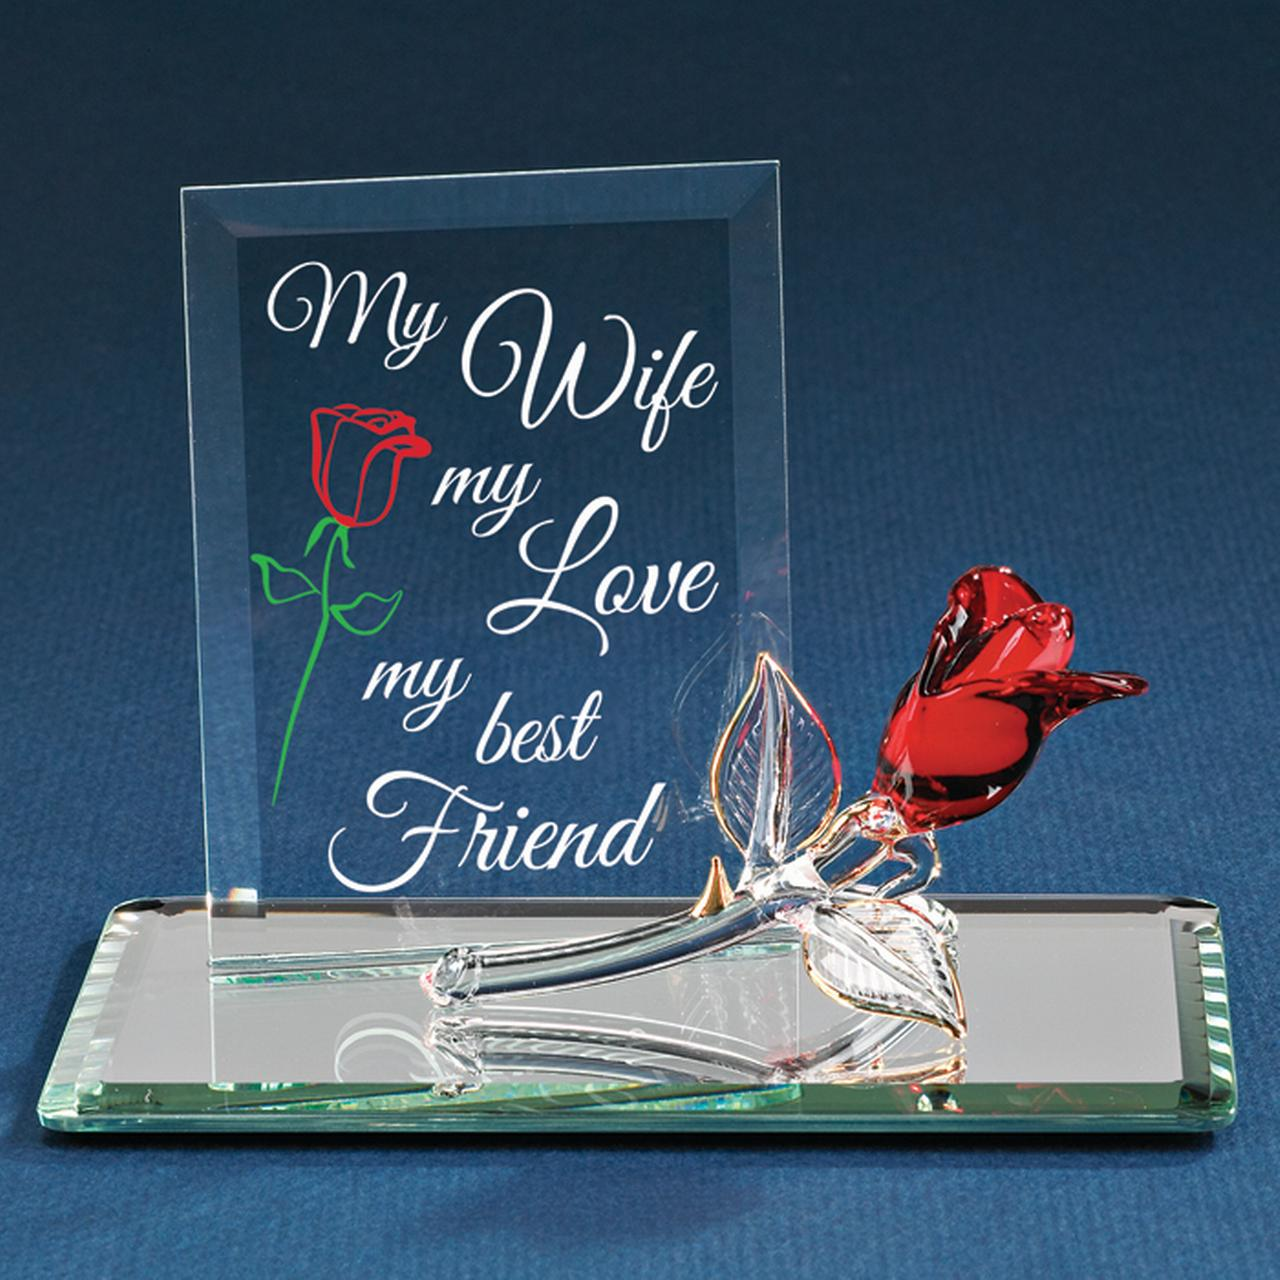 My Wife Best Friends Bestfriend Friendship Red Rose Glass Figurine Glas Baron Love Gifts For Women For Her